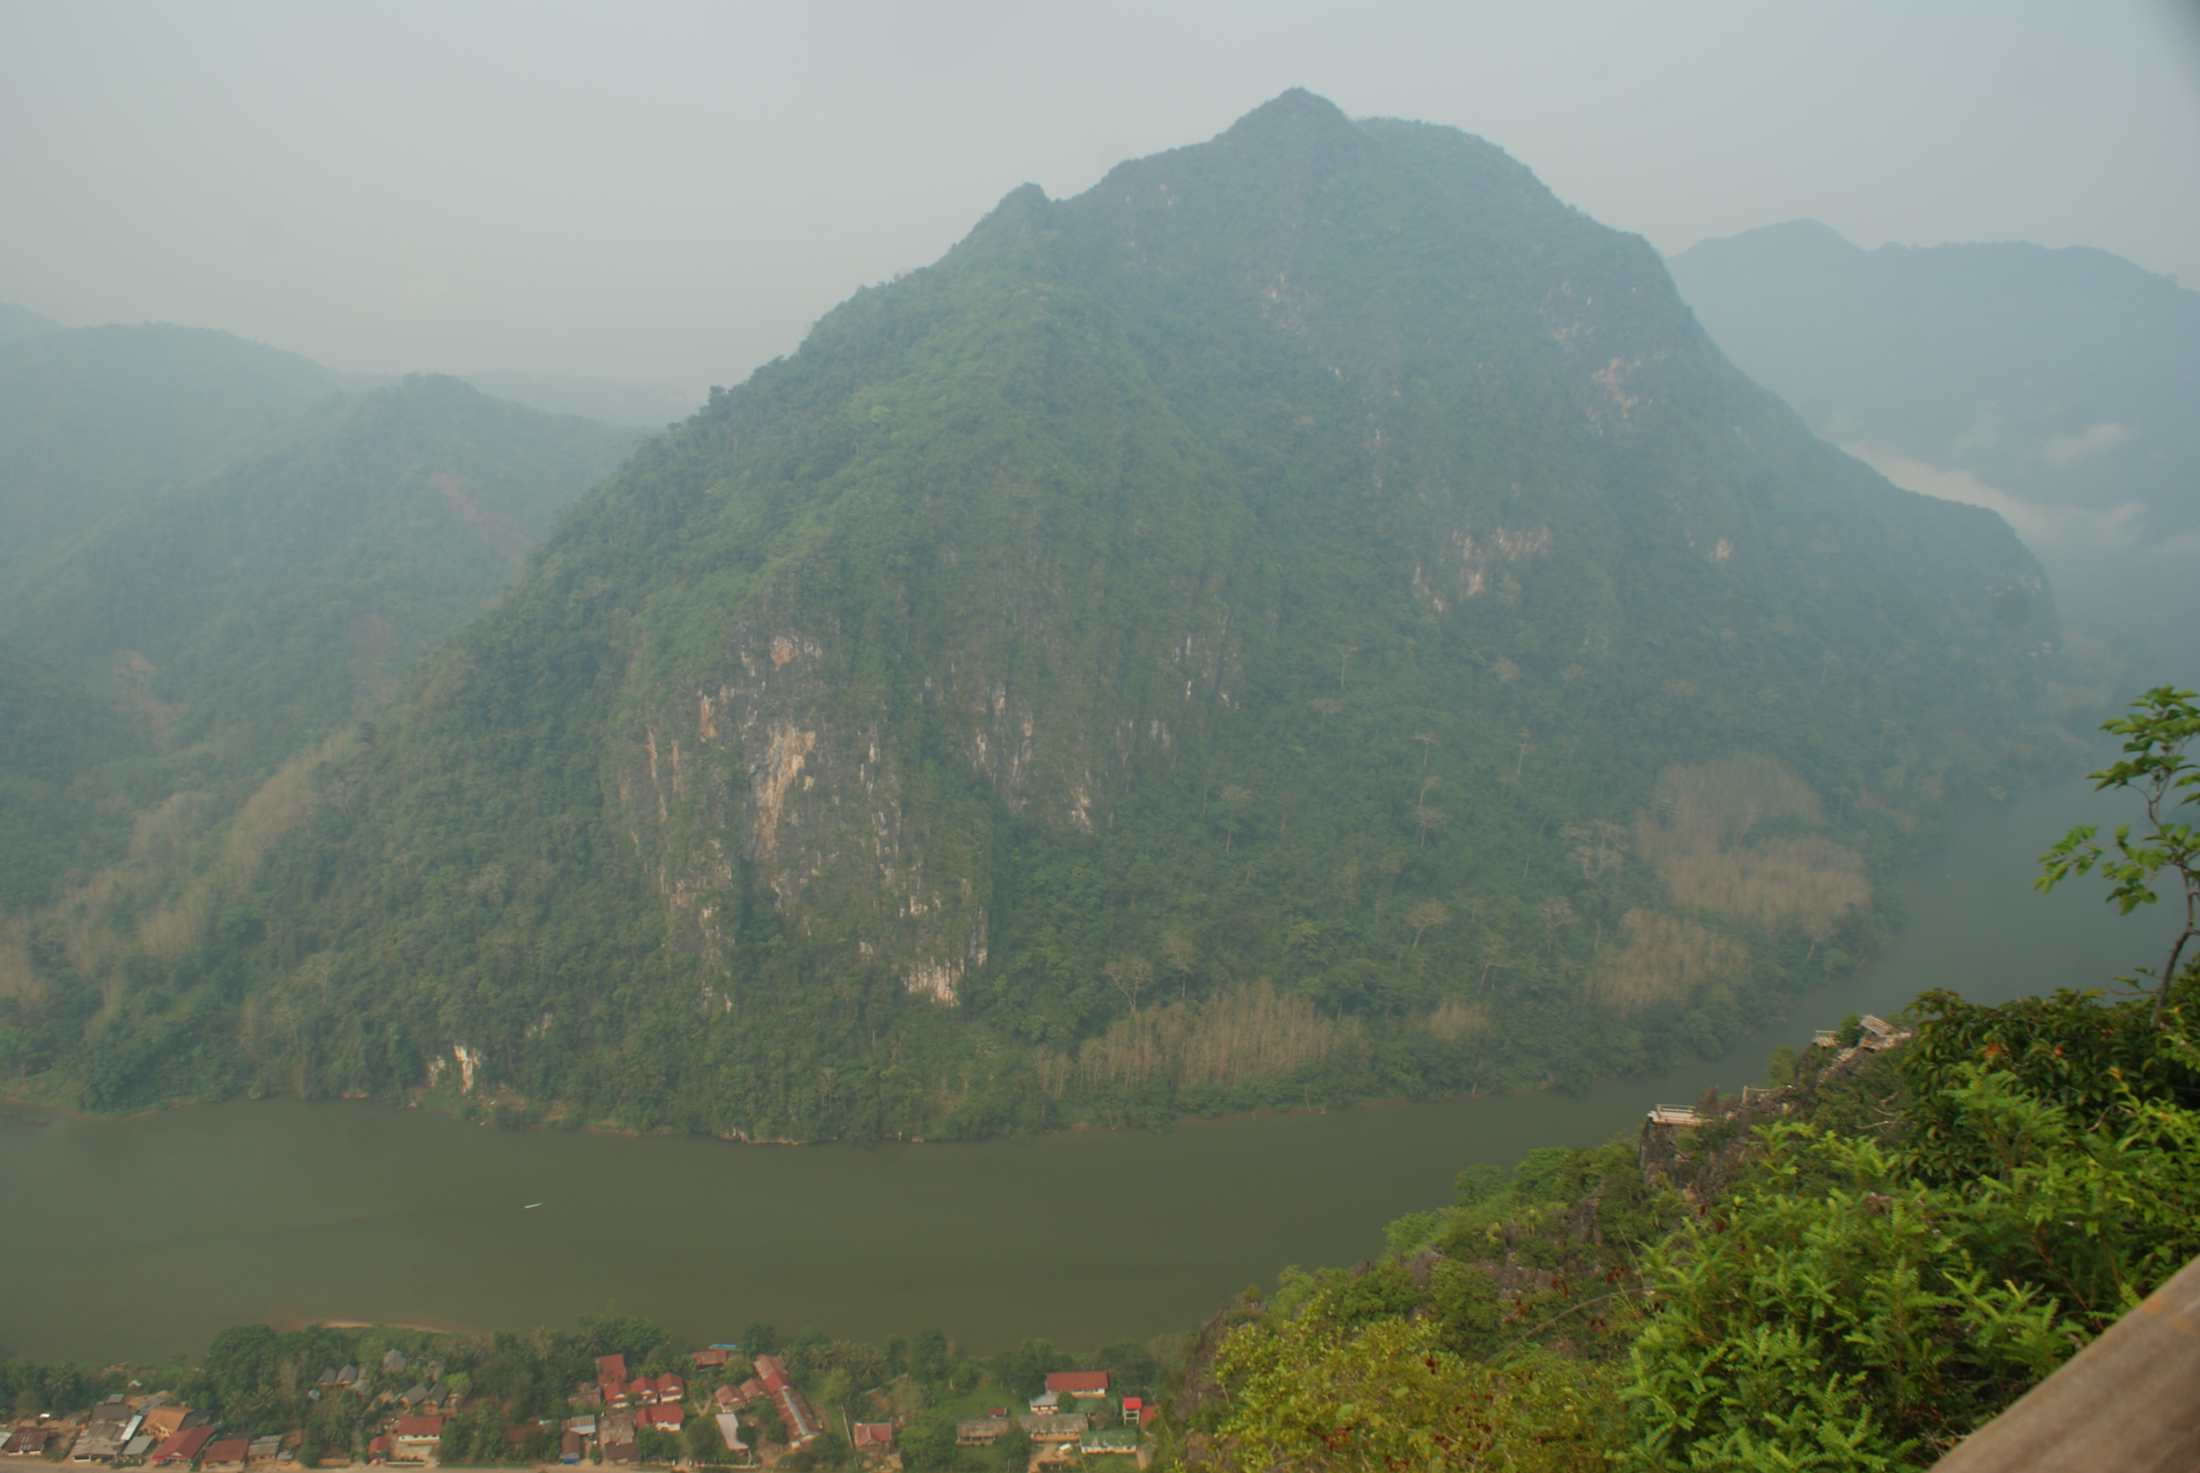 View of the surrounding mountains from Sleeping Woman Viewpoint